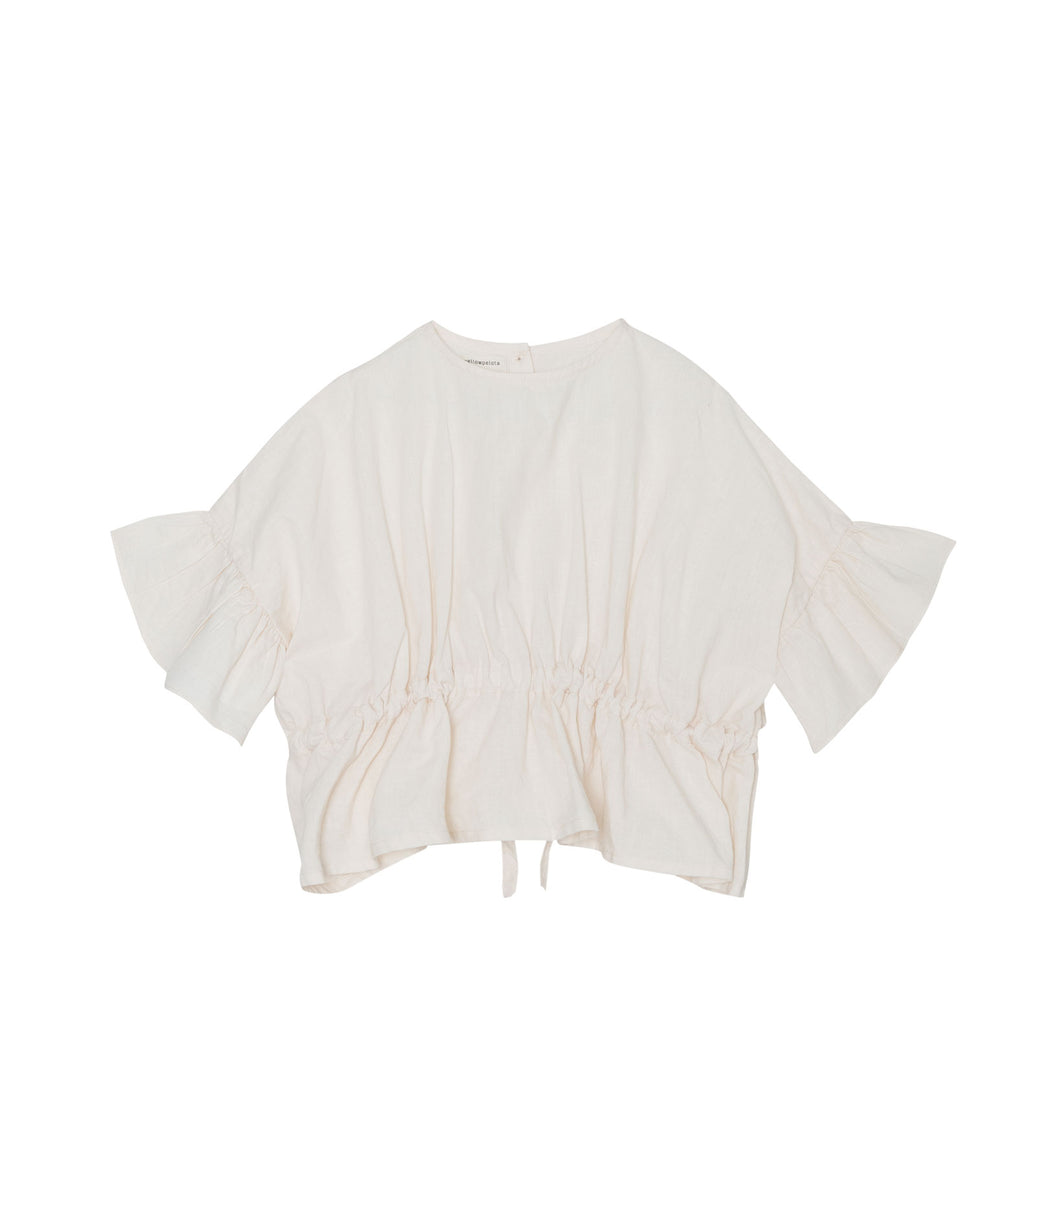 Yellow Pelota Hala Blouse - Natural Linen